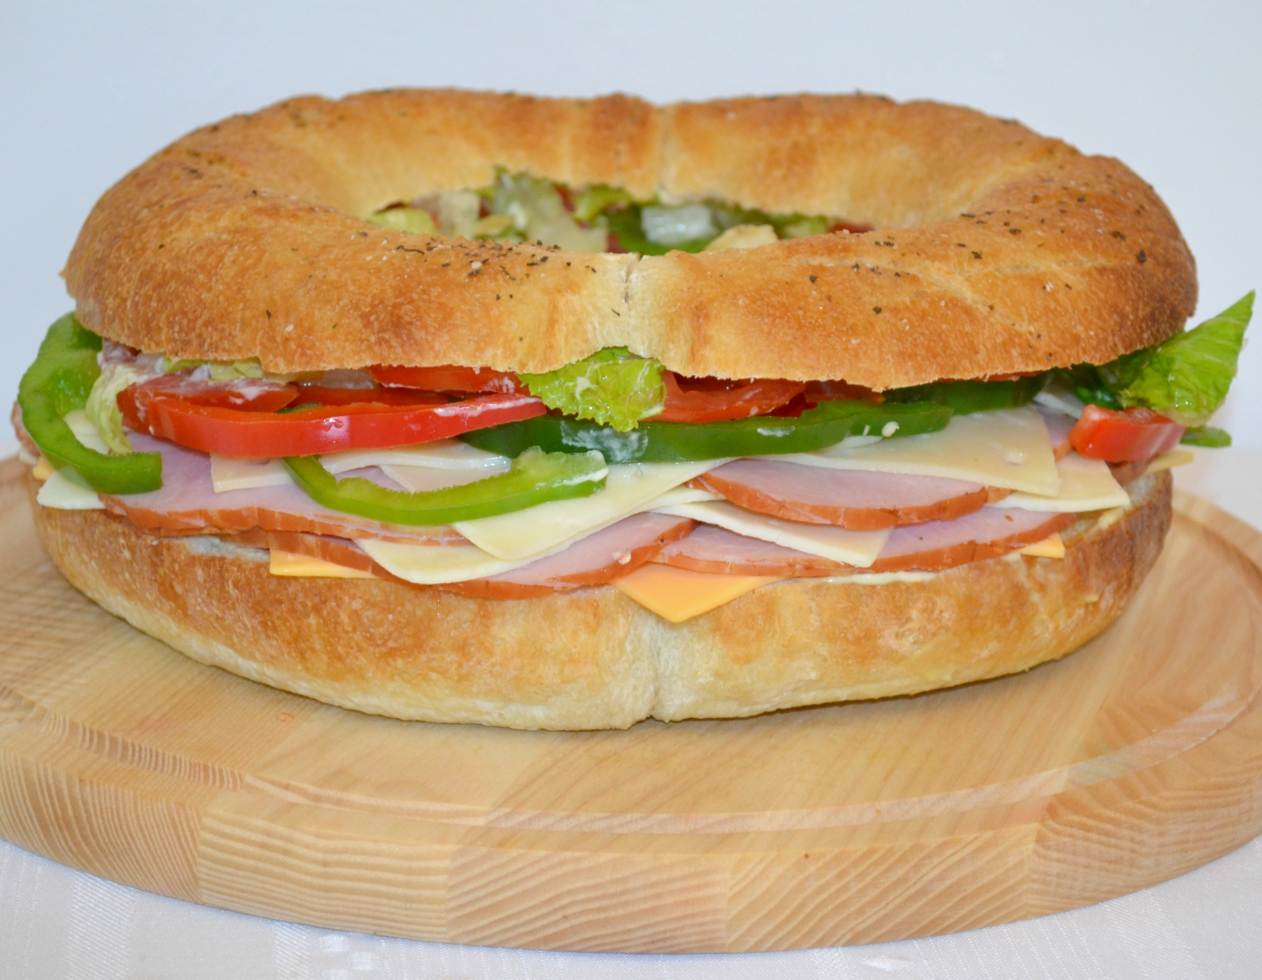 Gourmet Ham and Cheese Party Ring is perfect for any get together. A giant sandwich loaf filled with ham, cheeses, and veggies.